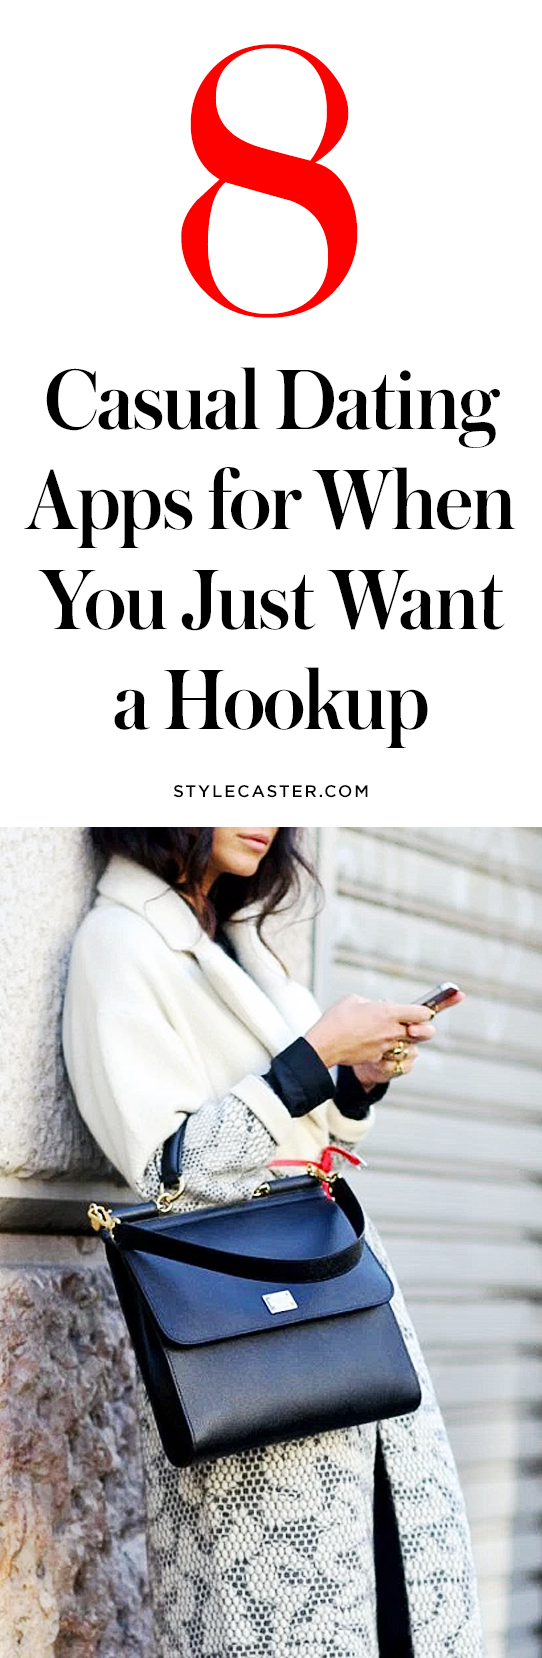 The best casual dating apps | @stylecaster